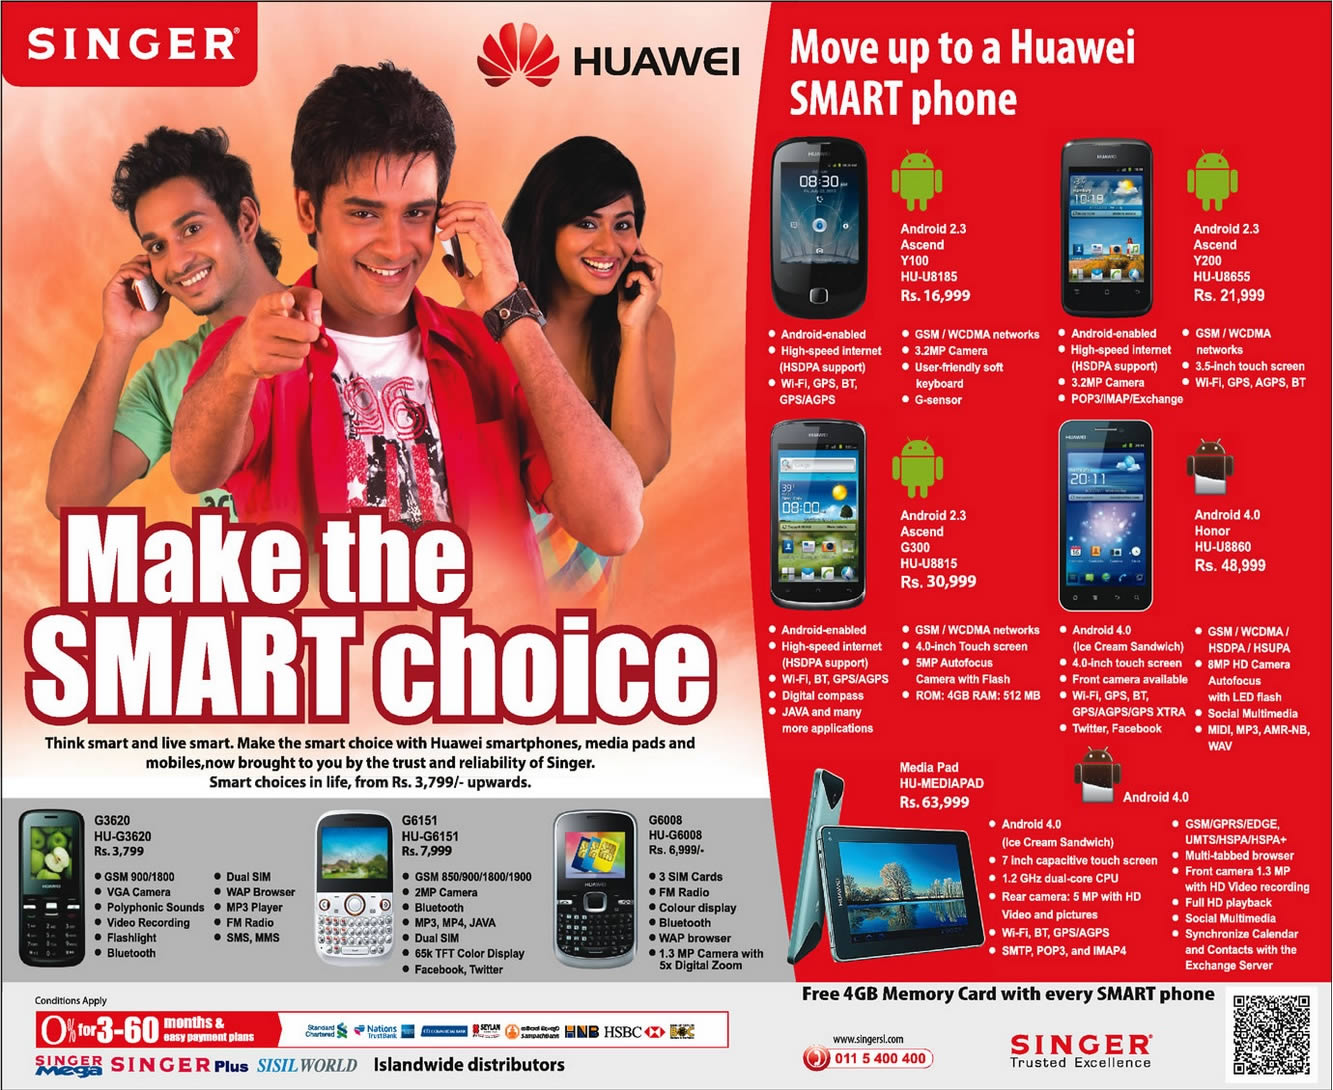 huawei Mobiles Prices and Promotions in Sri Lanka – SynergyY